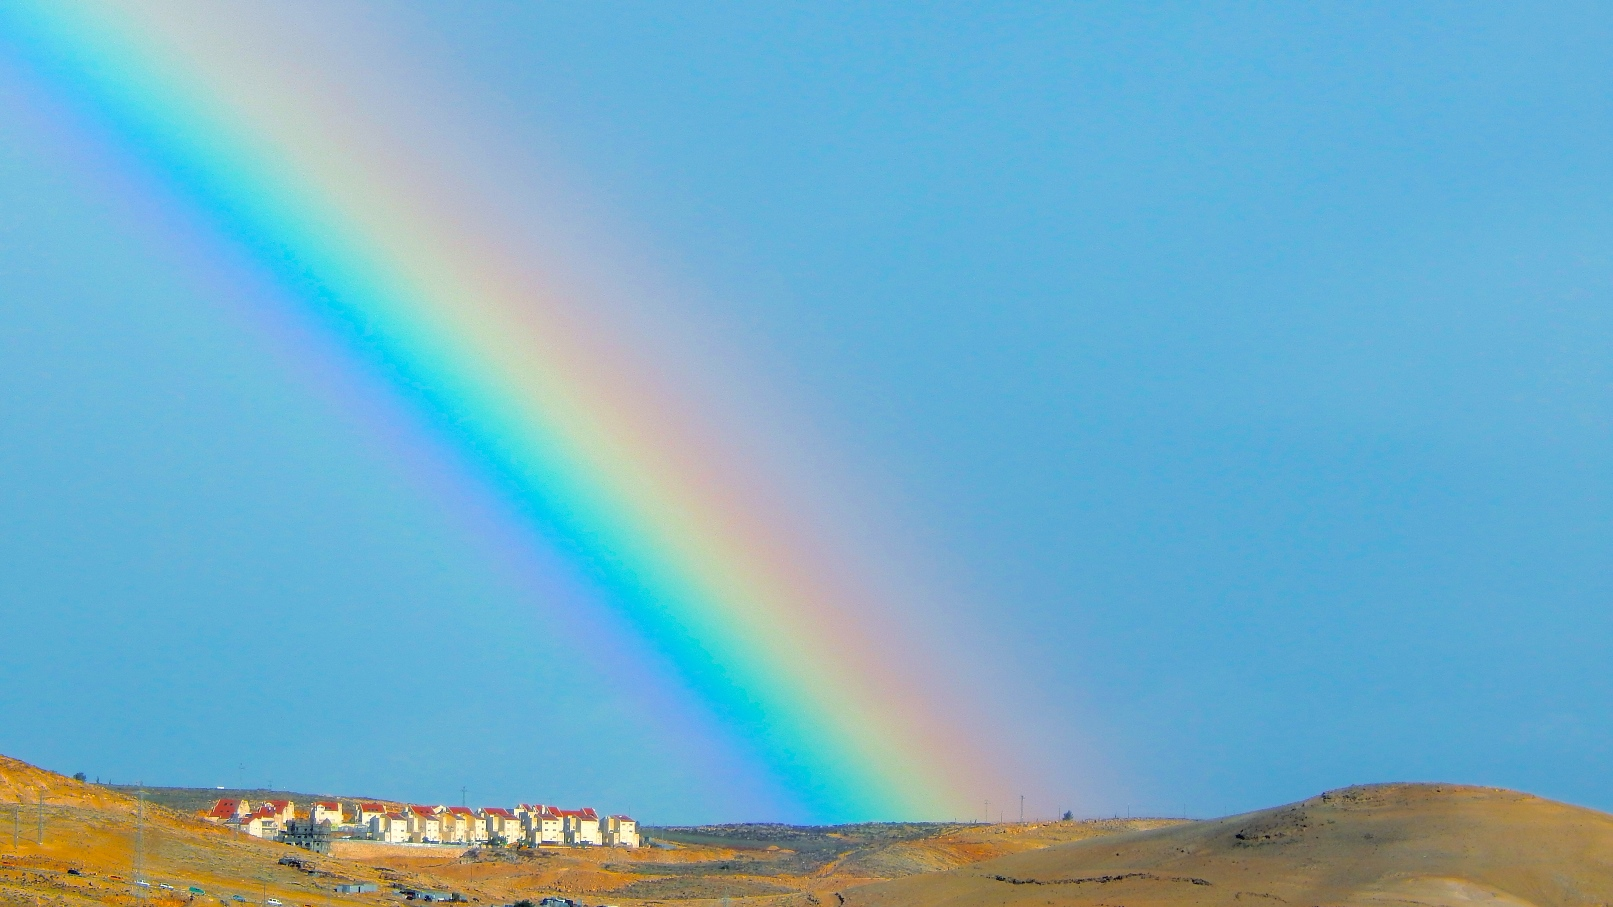 10 spectacular rainbows over israel israel21c